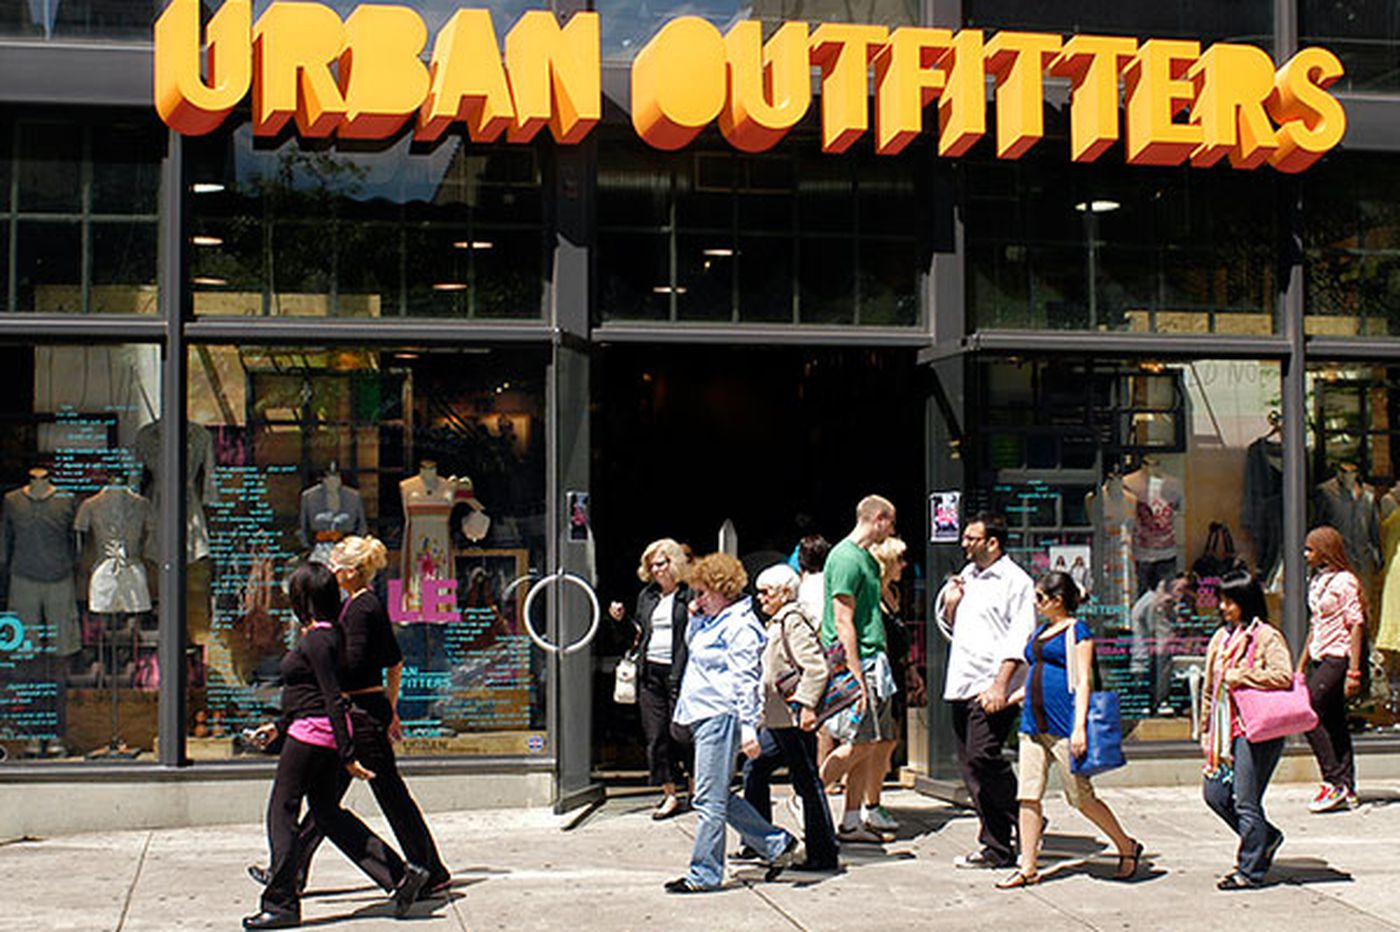 Urban Outfitters adding 2,500 jobs in region